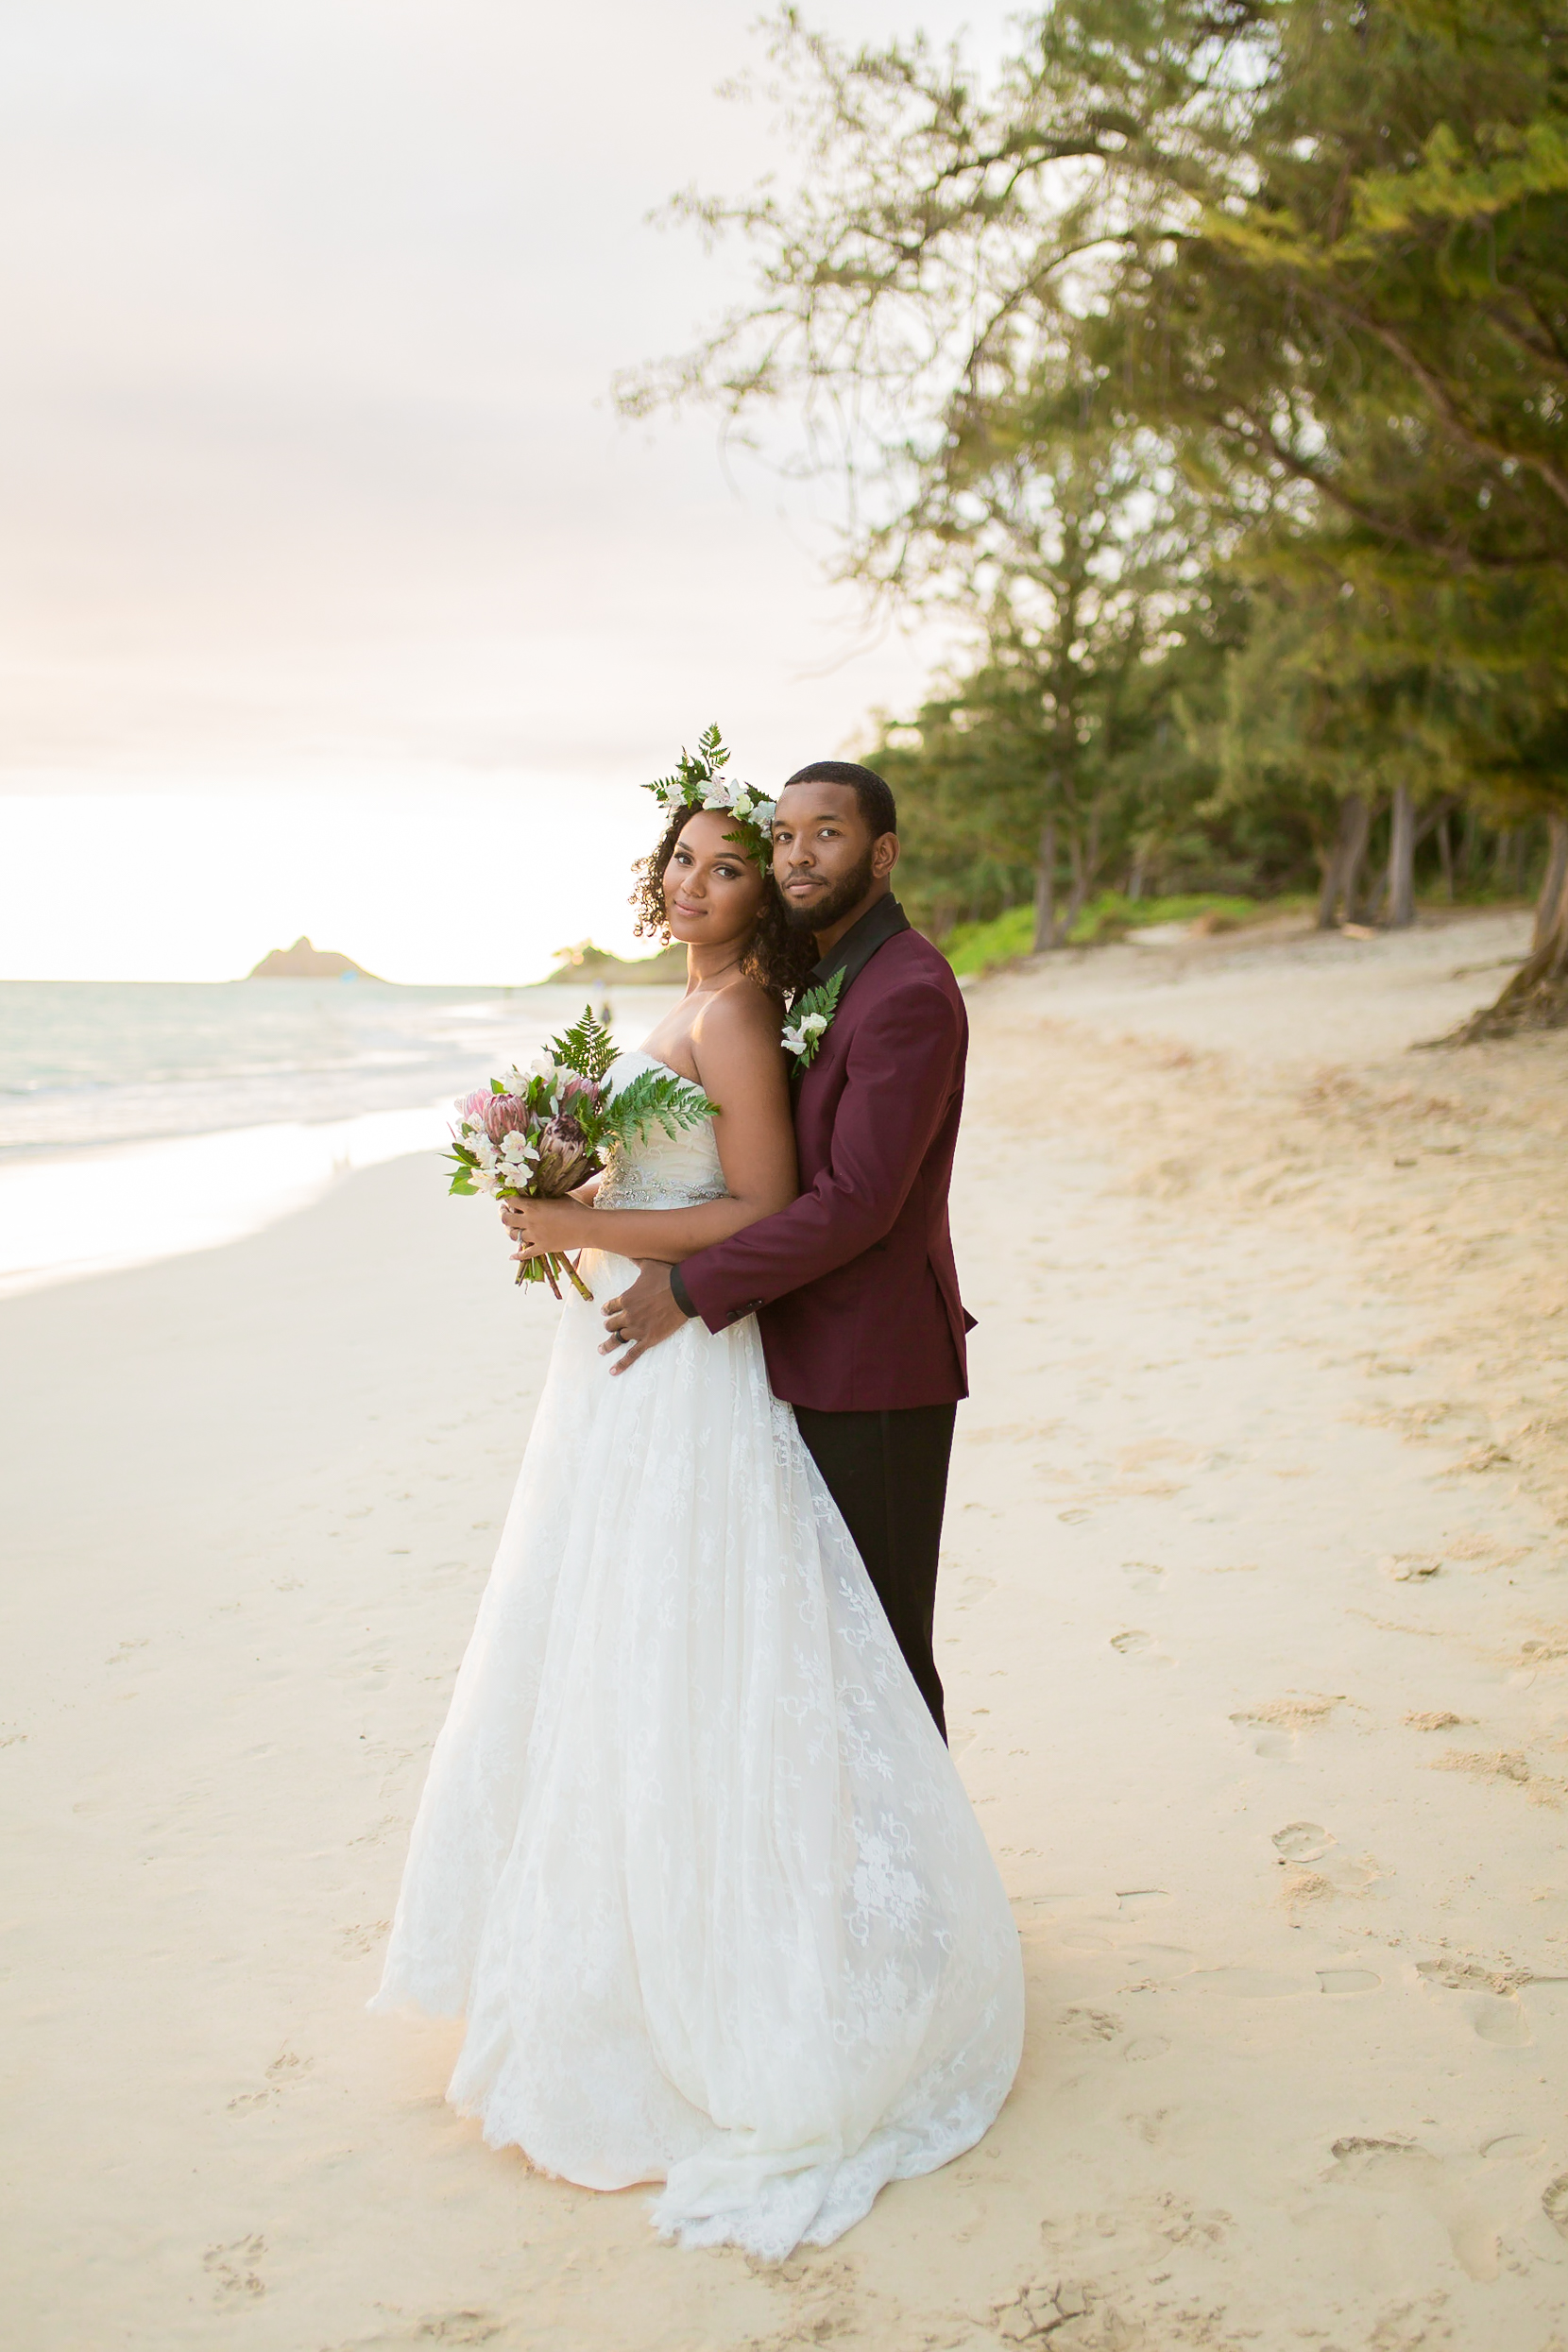 Location-BrideGroomBeach _Vanessa Hicks Photography-8314.jpg